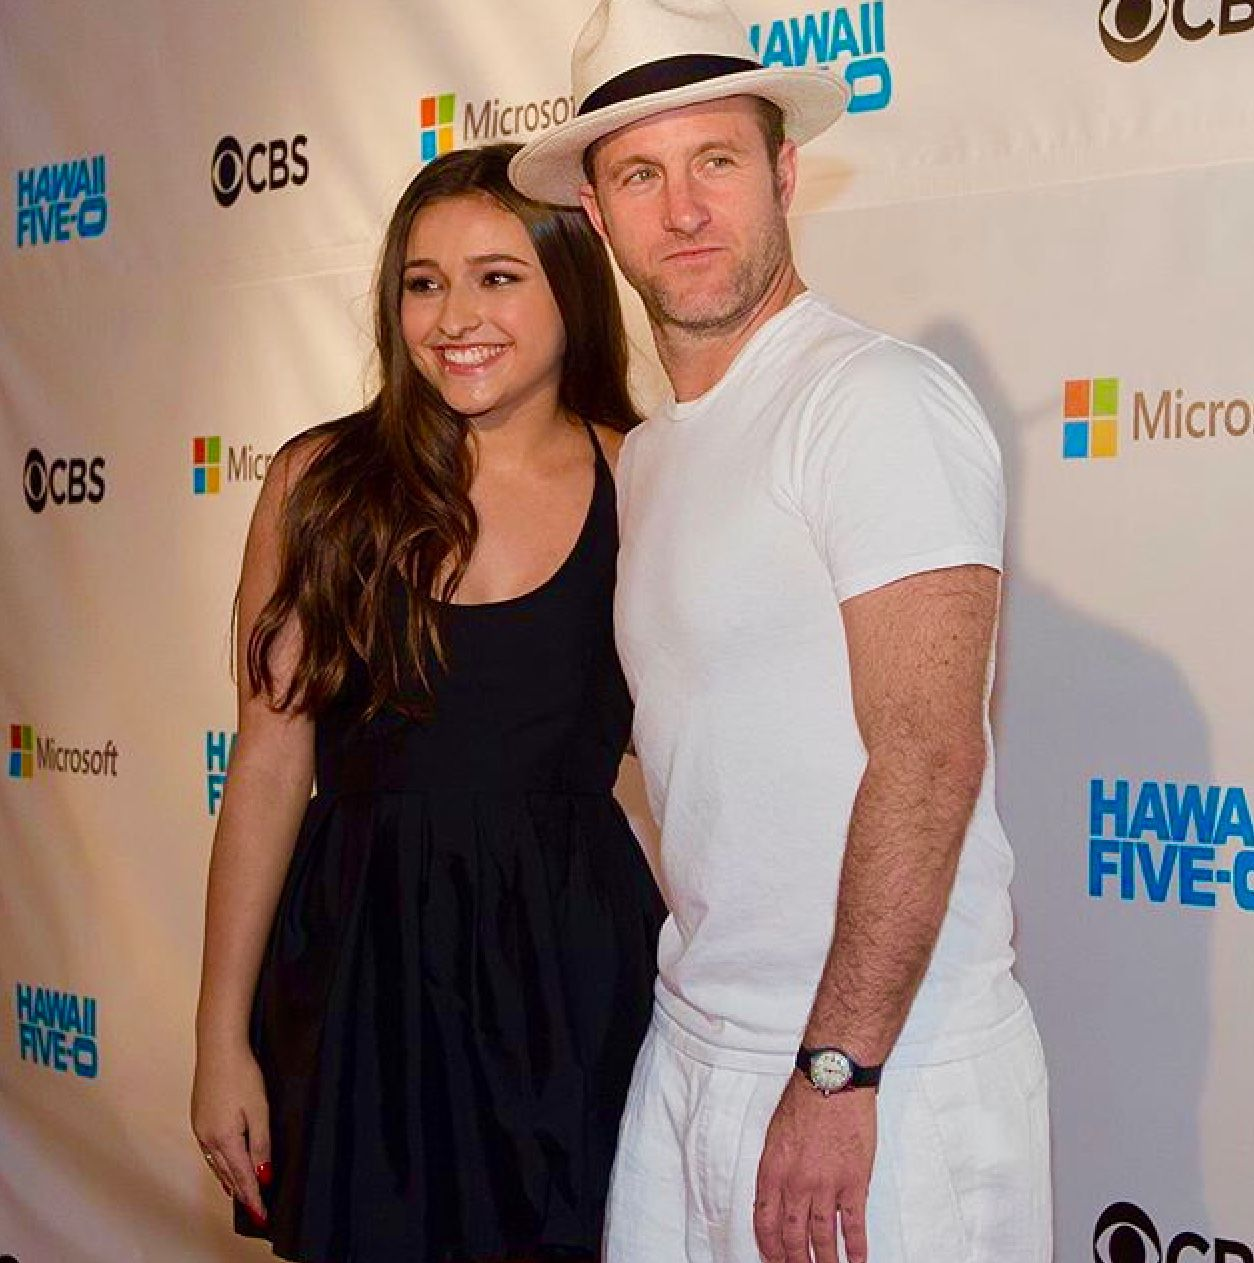 From Billyvs Instagram Teilor And Scott At H50 Sotb 2017 Hawaii